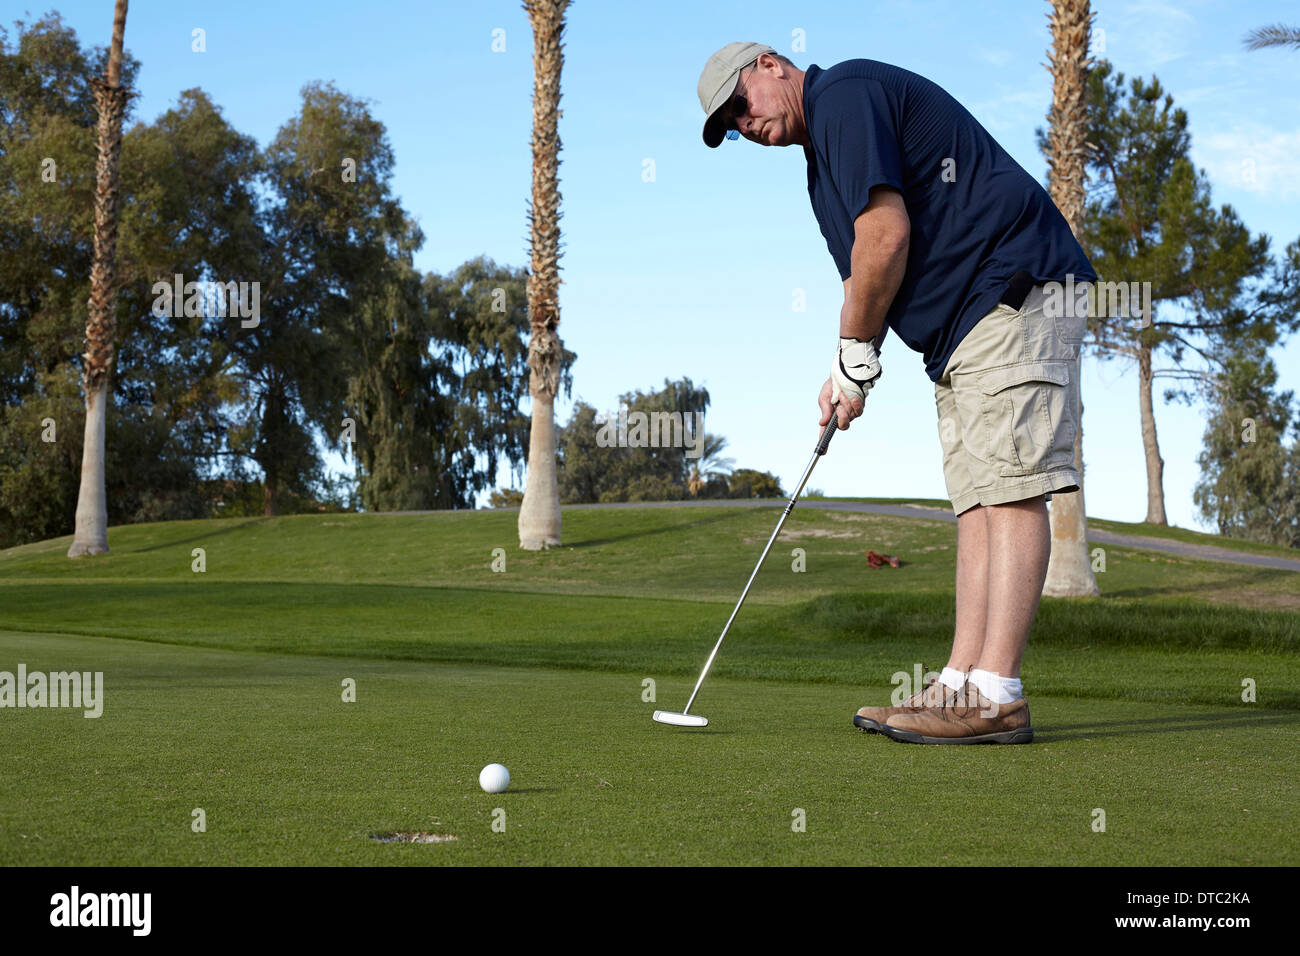 Portrait of mature male golfer taking shot on green - Stock Image